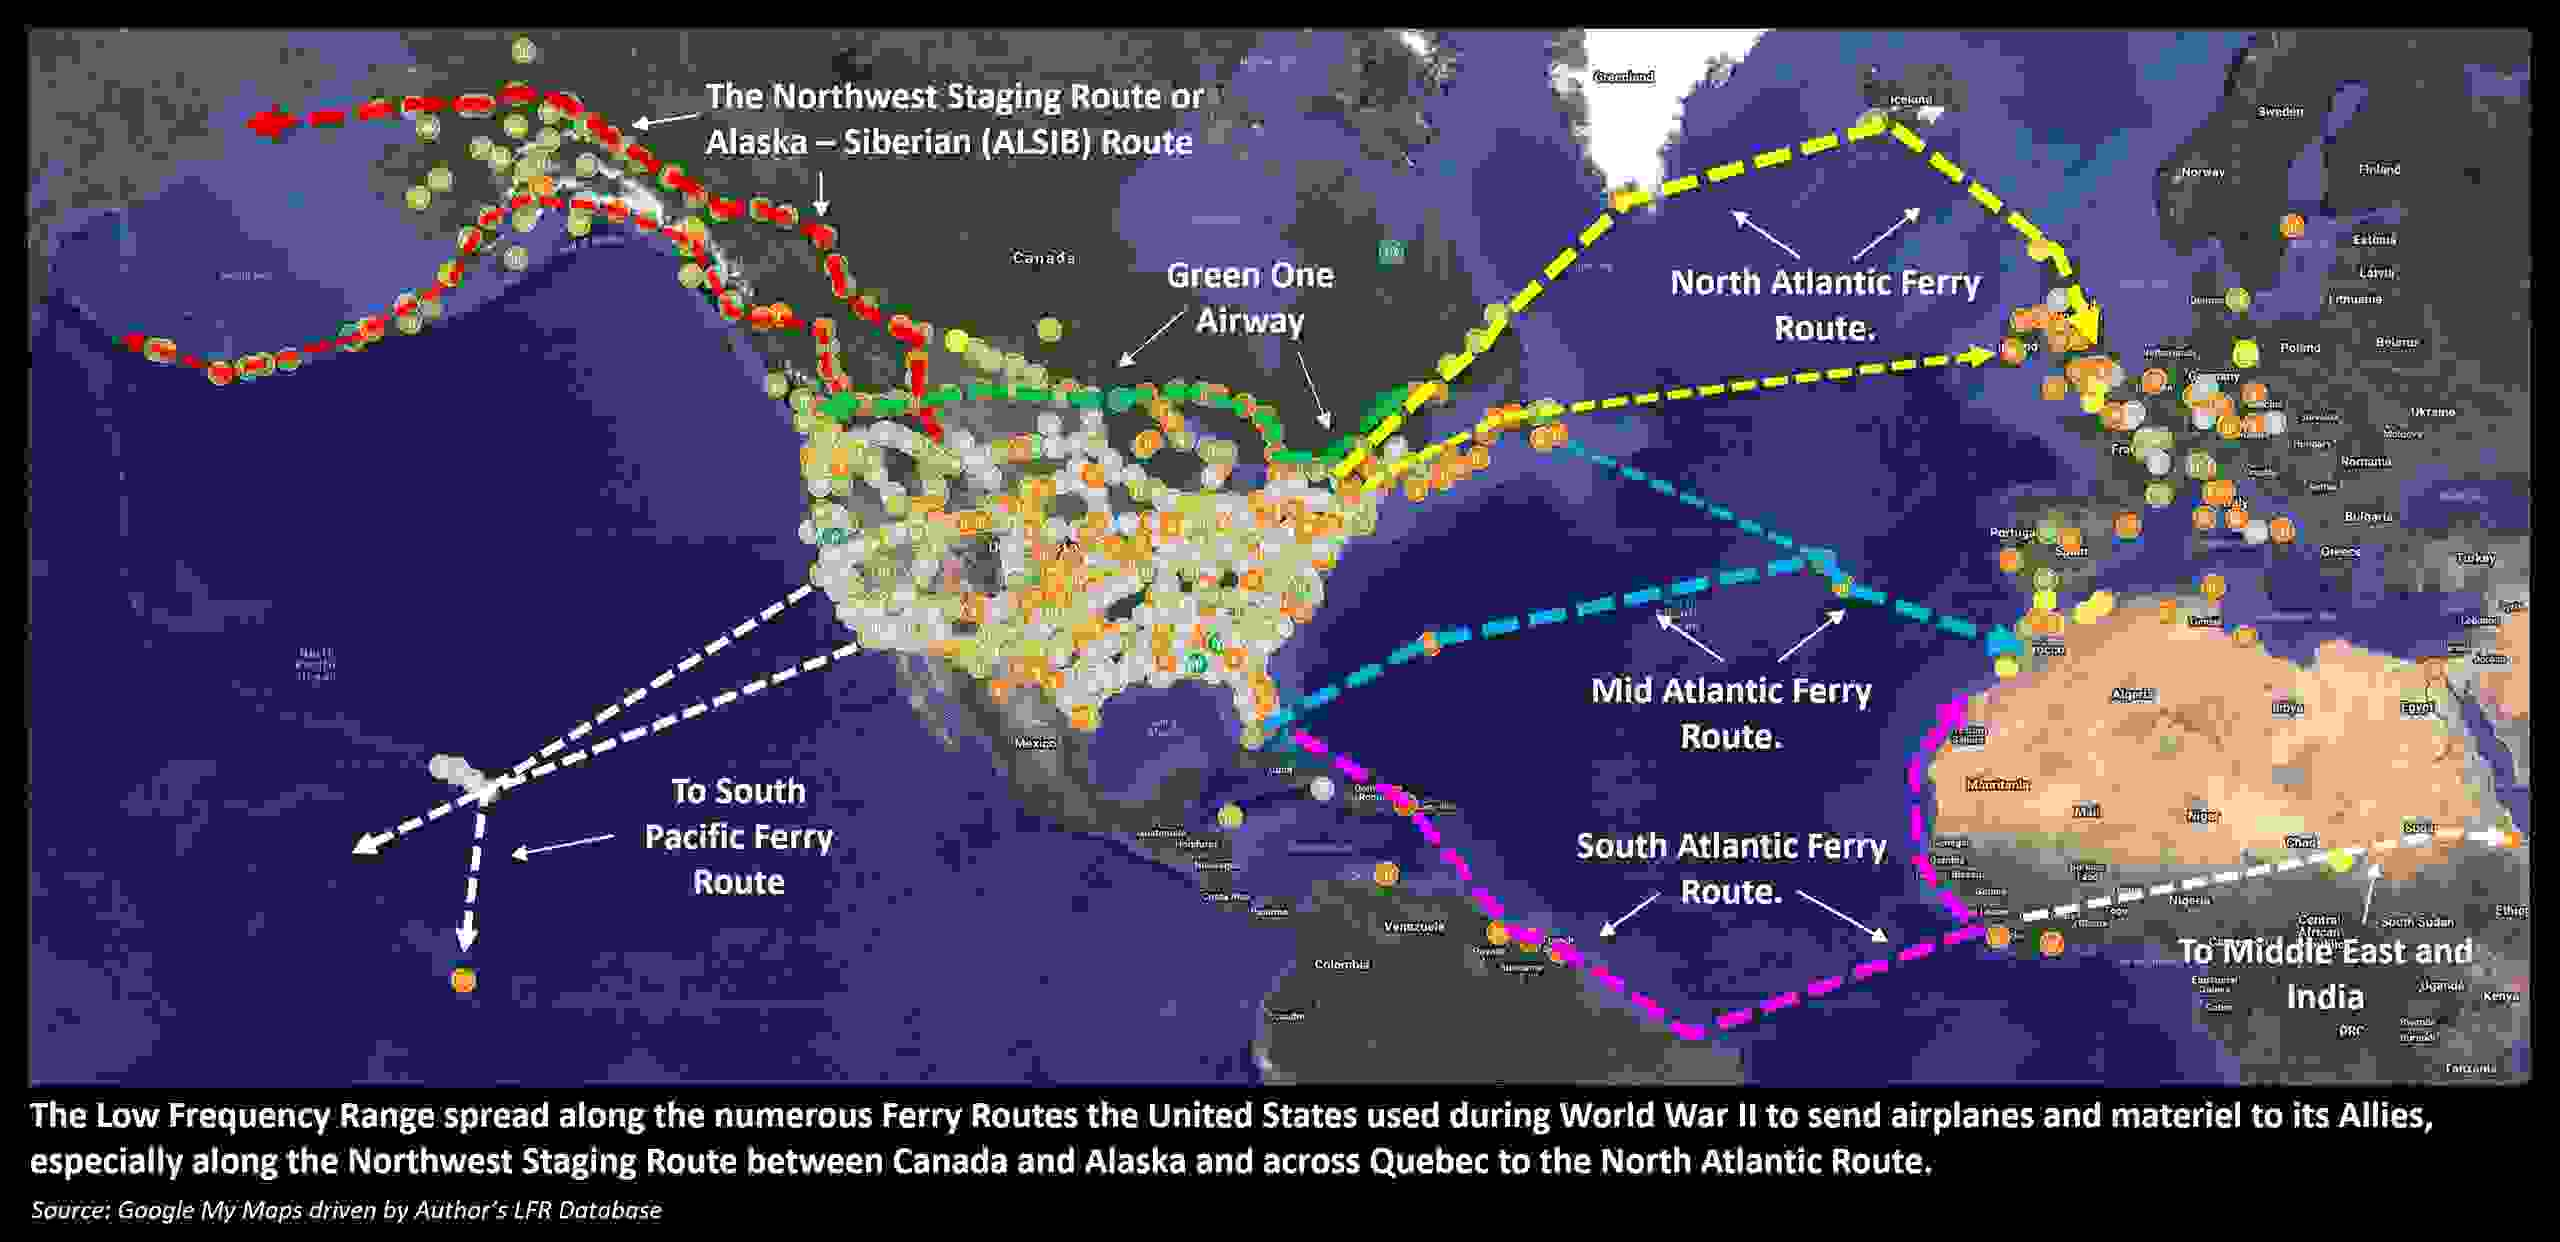 Low Frequency Radio Range, Four Course Radio Range: World War II Ferry Routes and LFR Spread